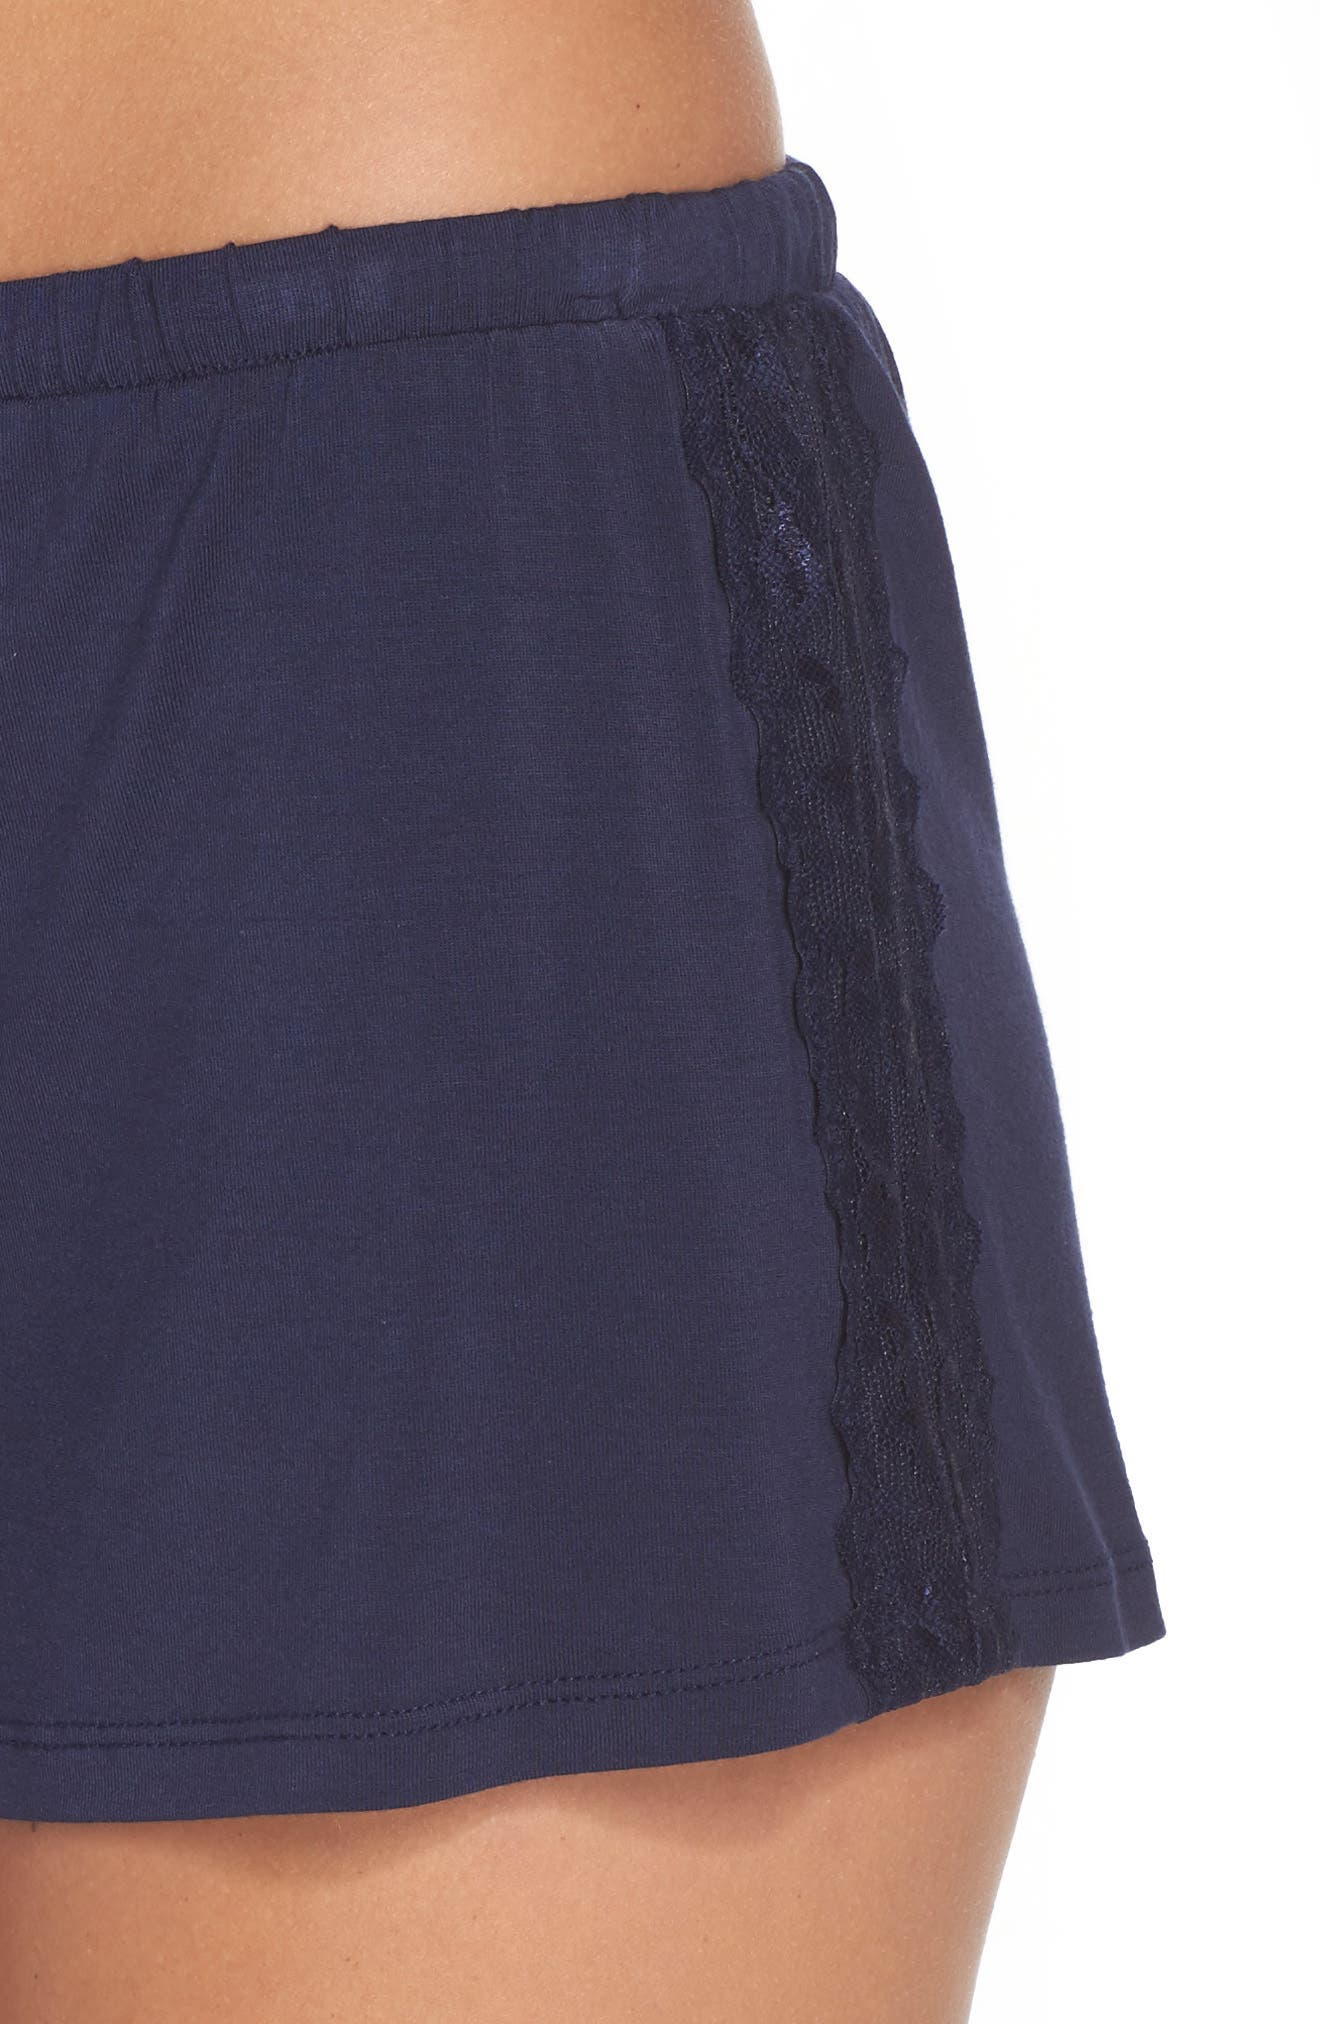 Lounge Shorts,                             Alternate thumbnail 6, color,                             Navy